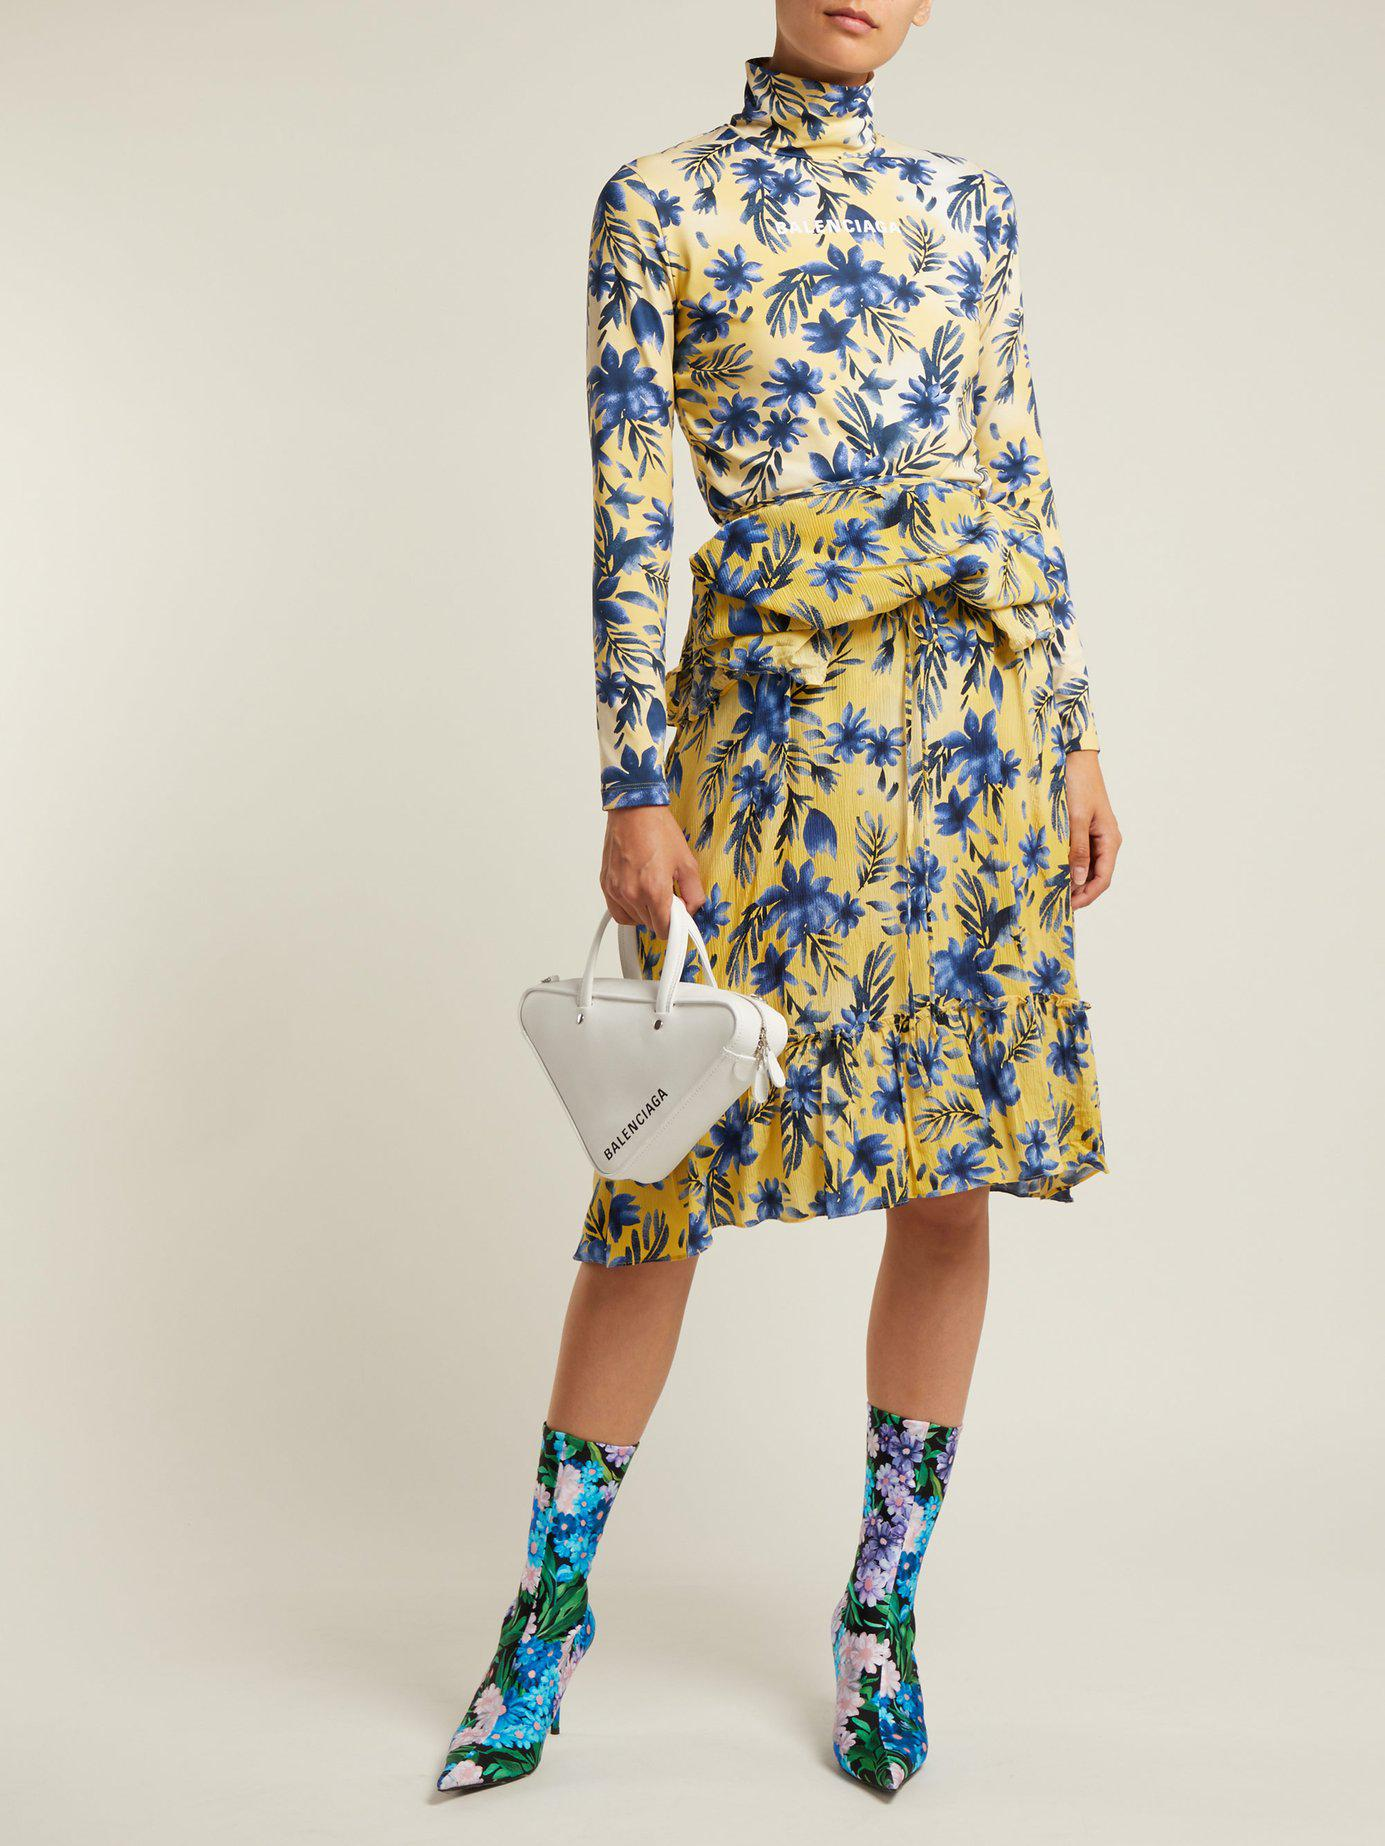 b5fc923bde08 Lyst - Balenciaga Floral Print Stretch Jersey And Silk Crepe Dress in Blue